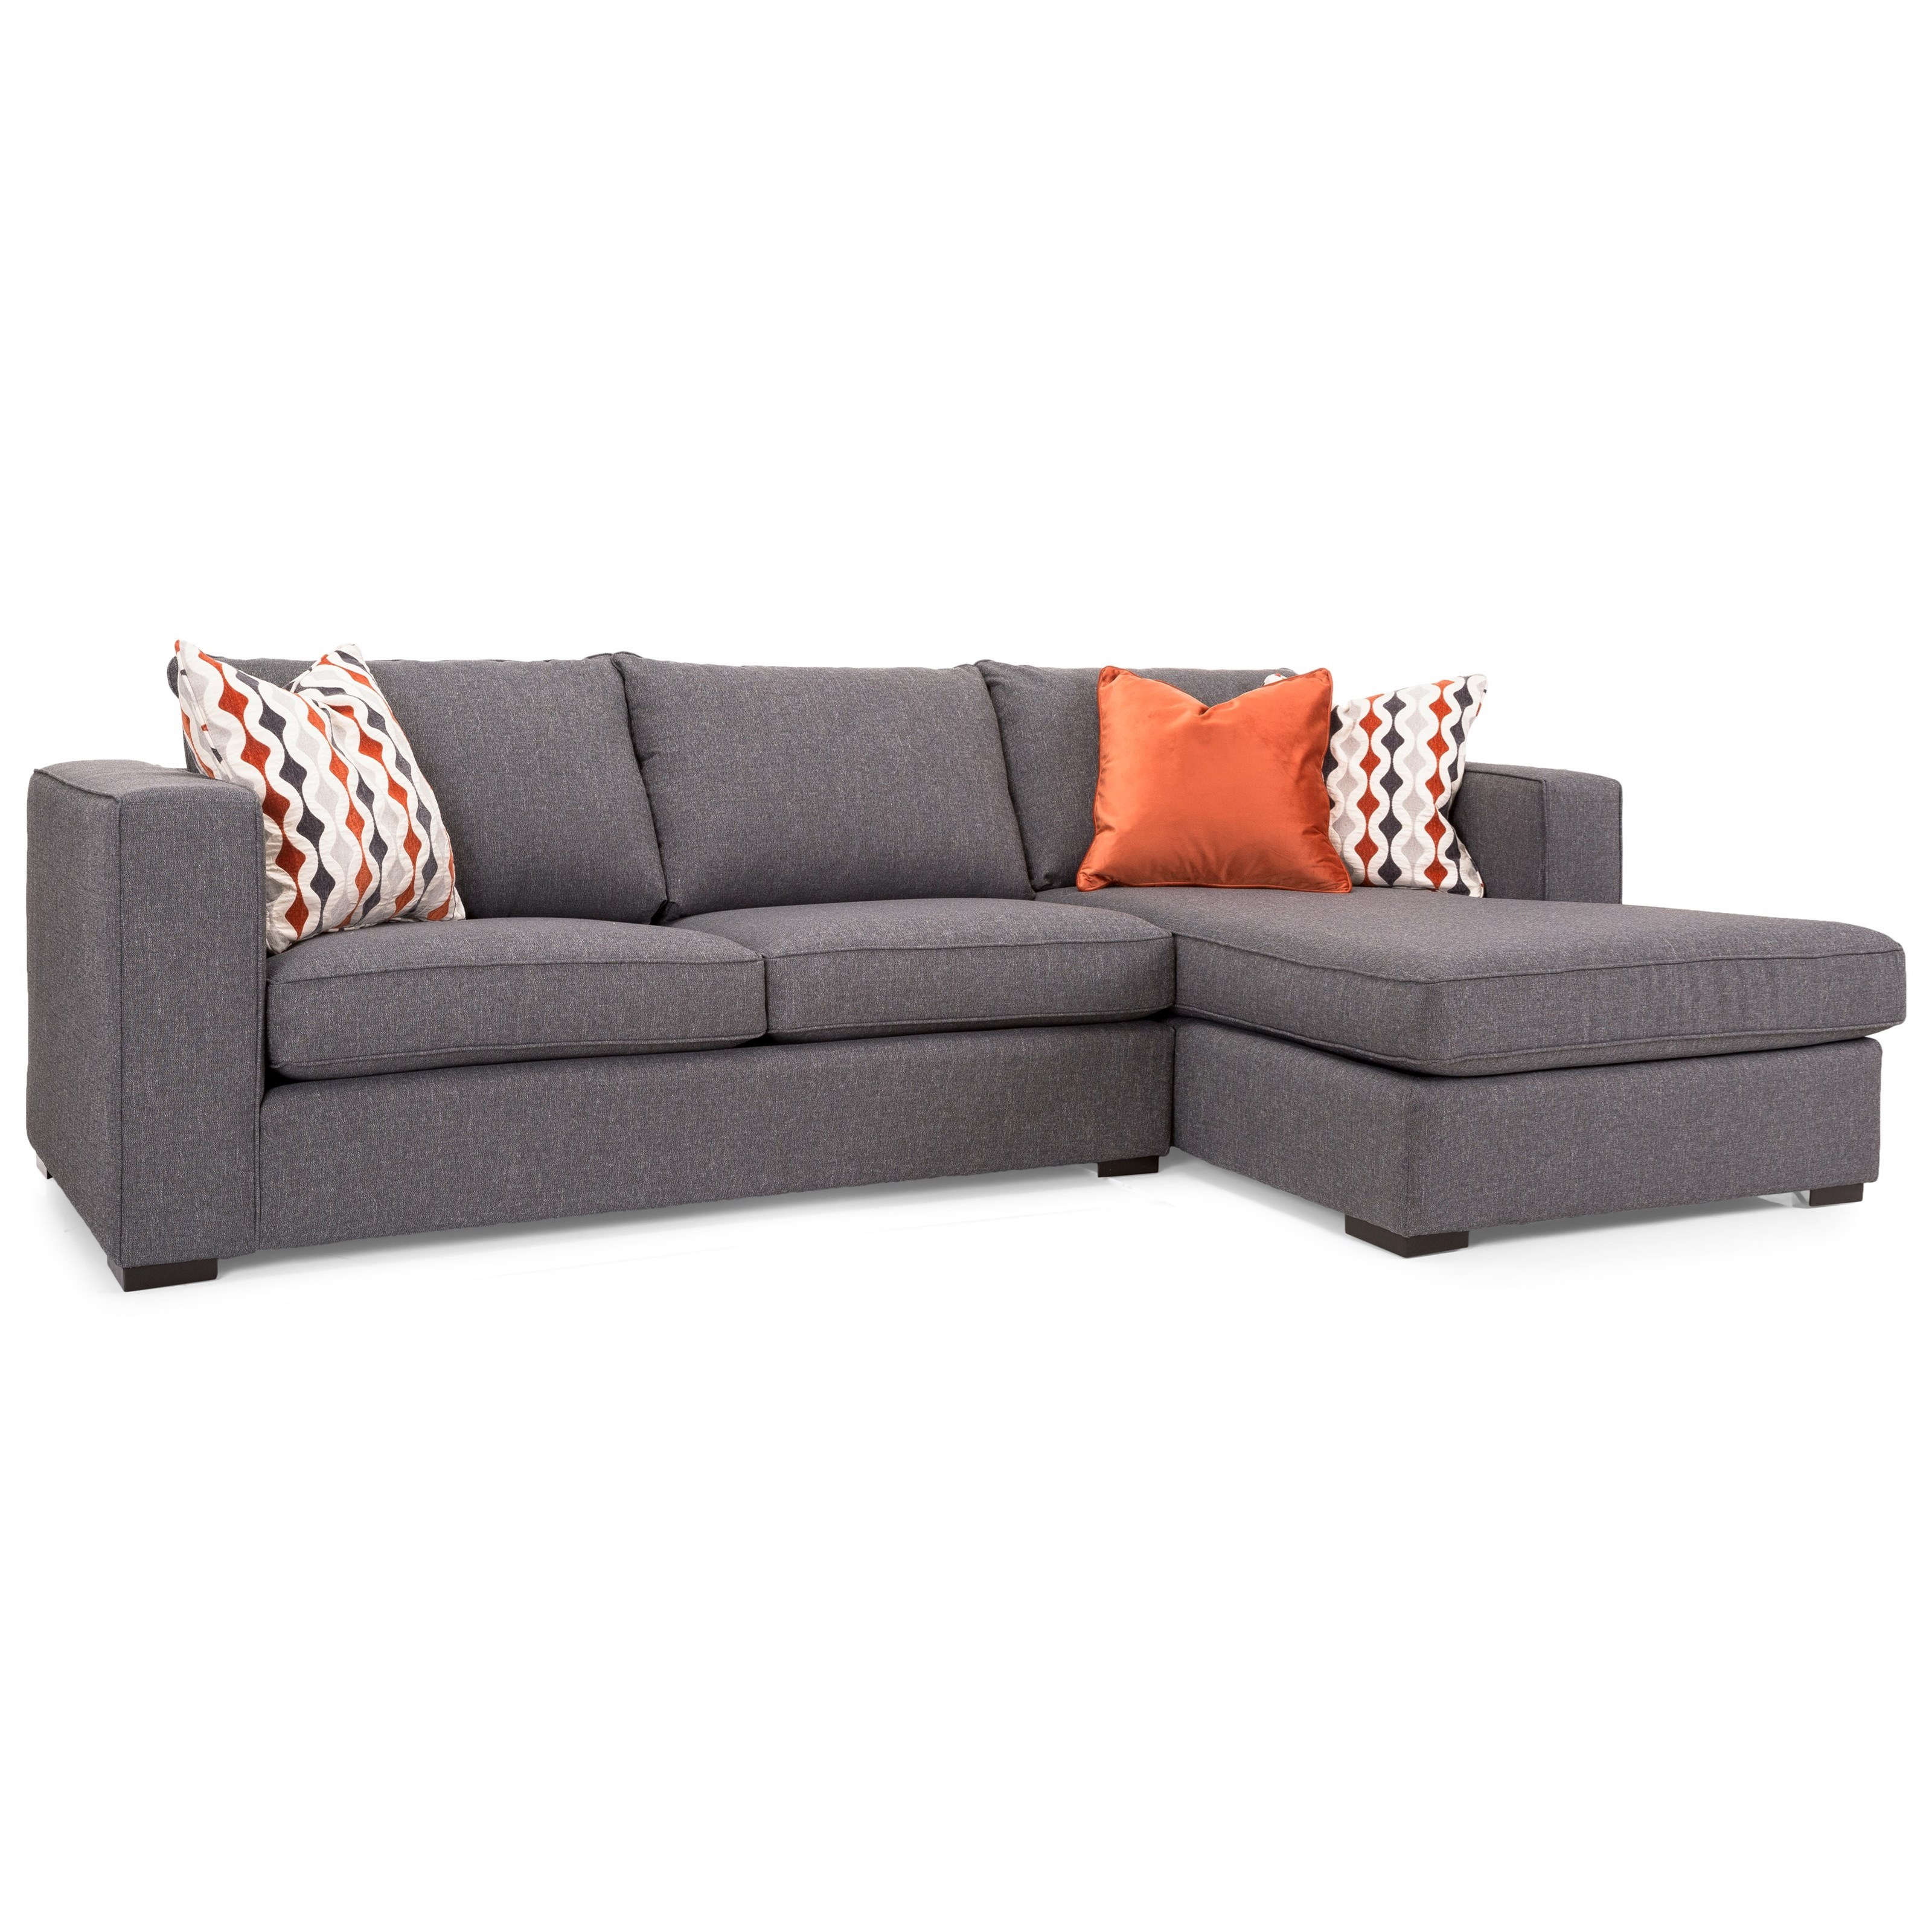 2900 Sofa with Chaise by Decor-Rest at Upper Room Home Furnishings